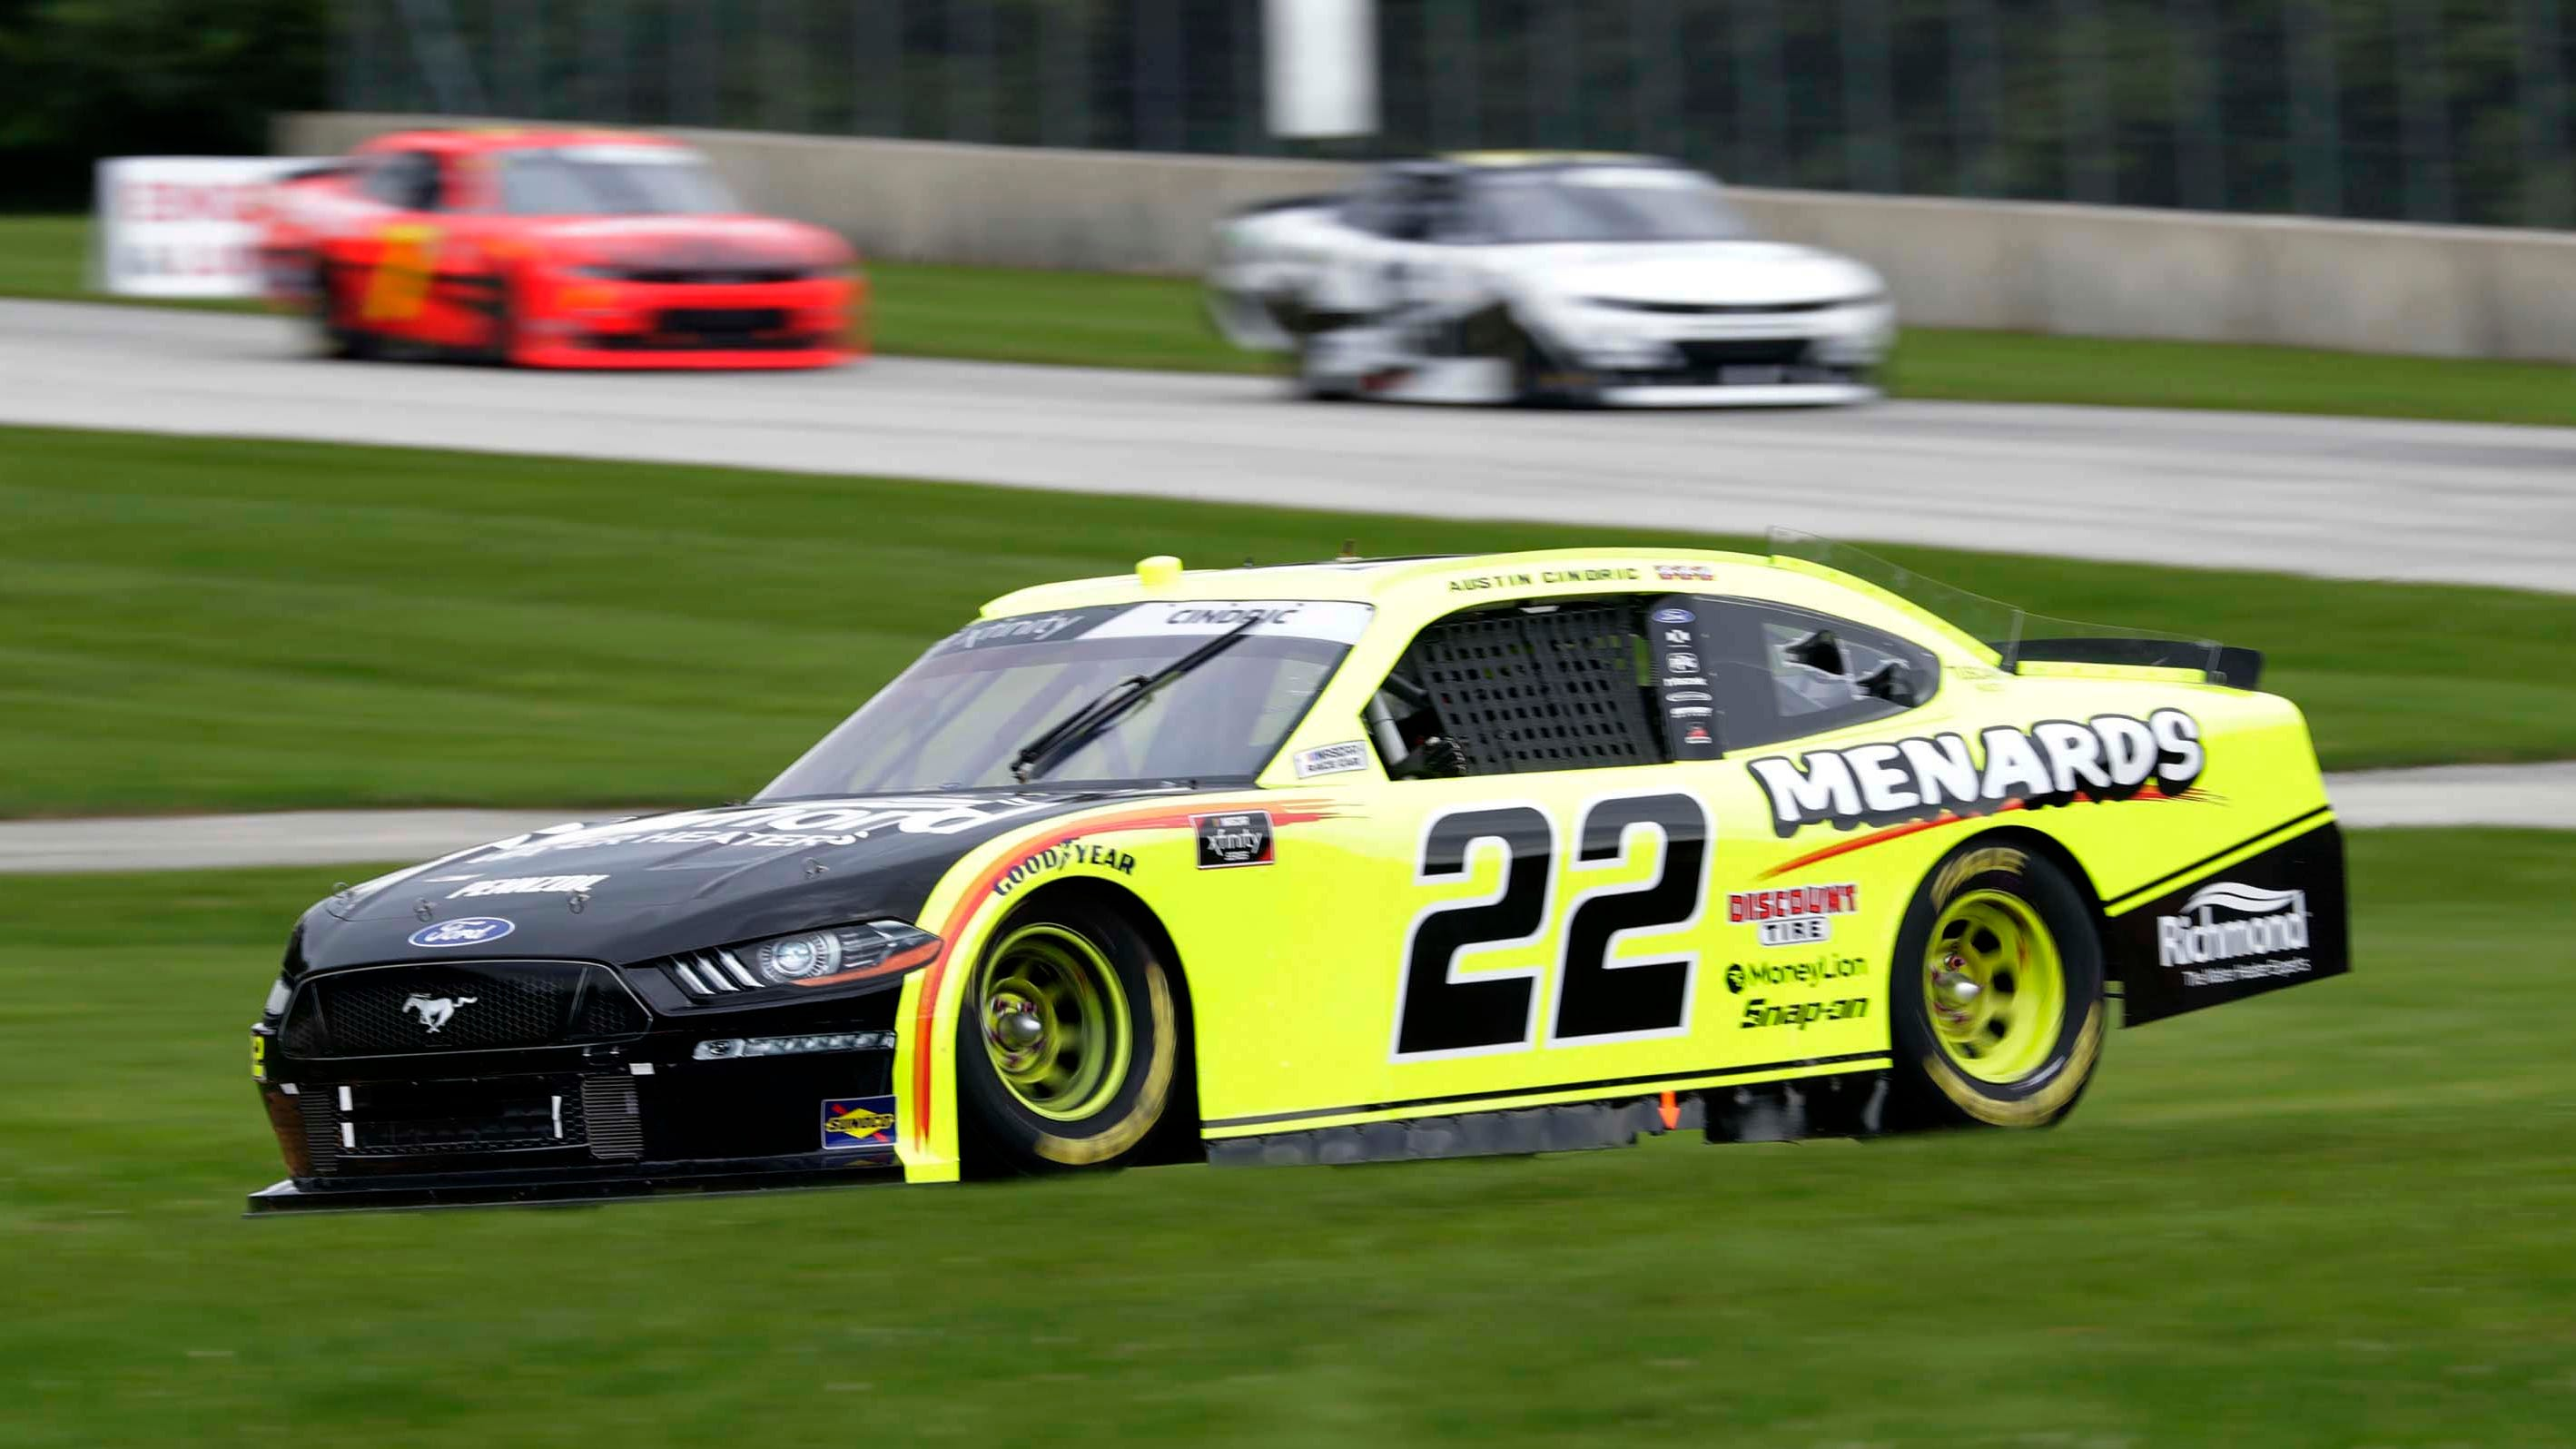 Nascar Cup Series At Road America In 2021 Questions And Answers